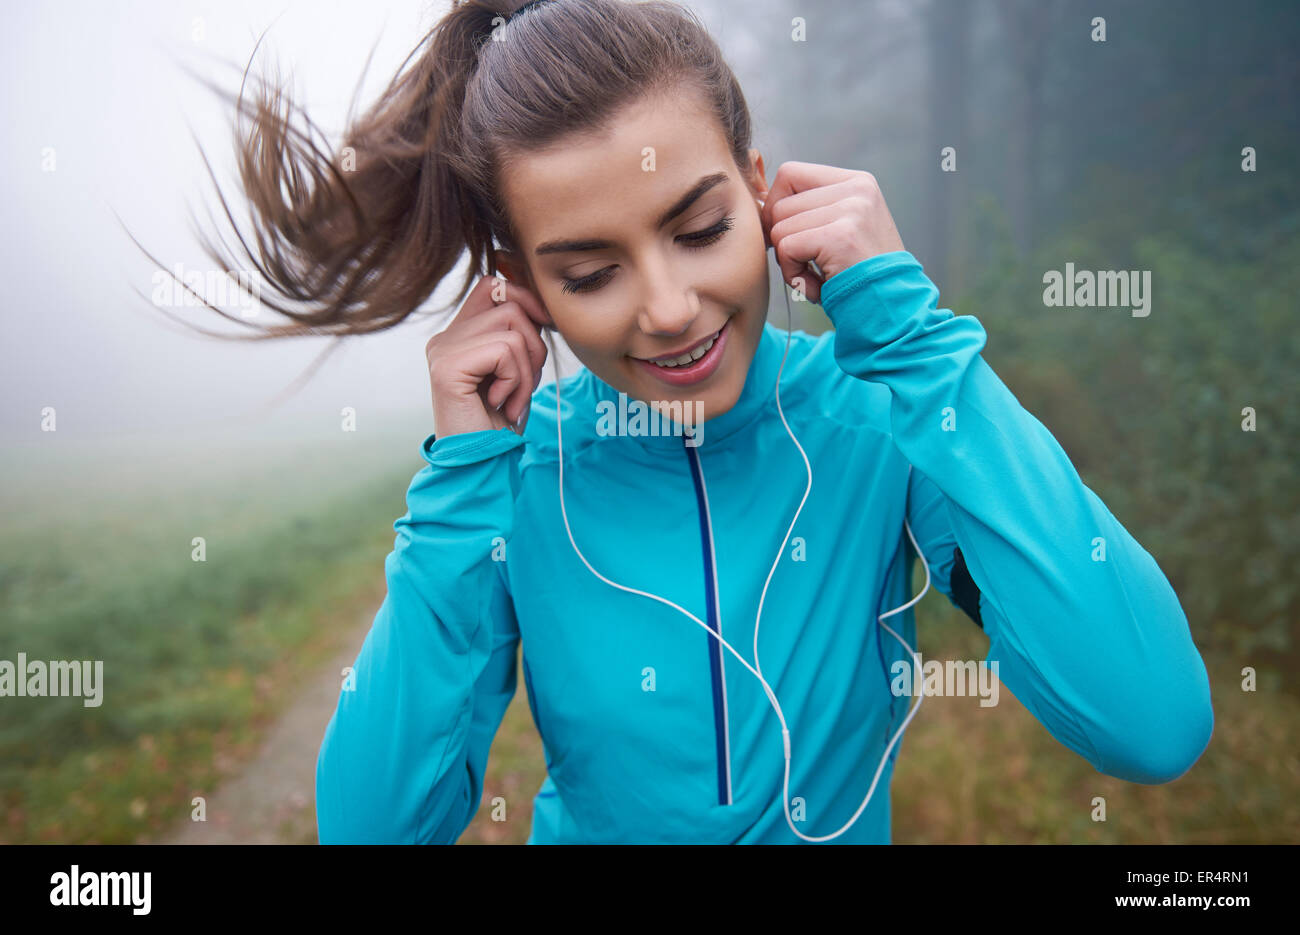 Running is the time to listen to her favourite sounds. Debica, Poland - Stock Image